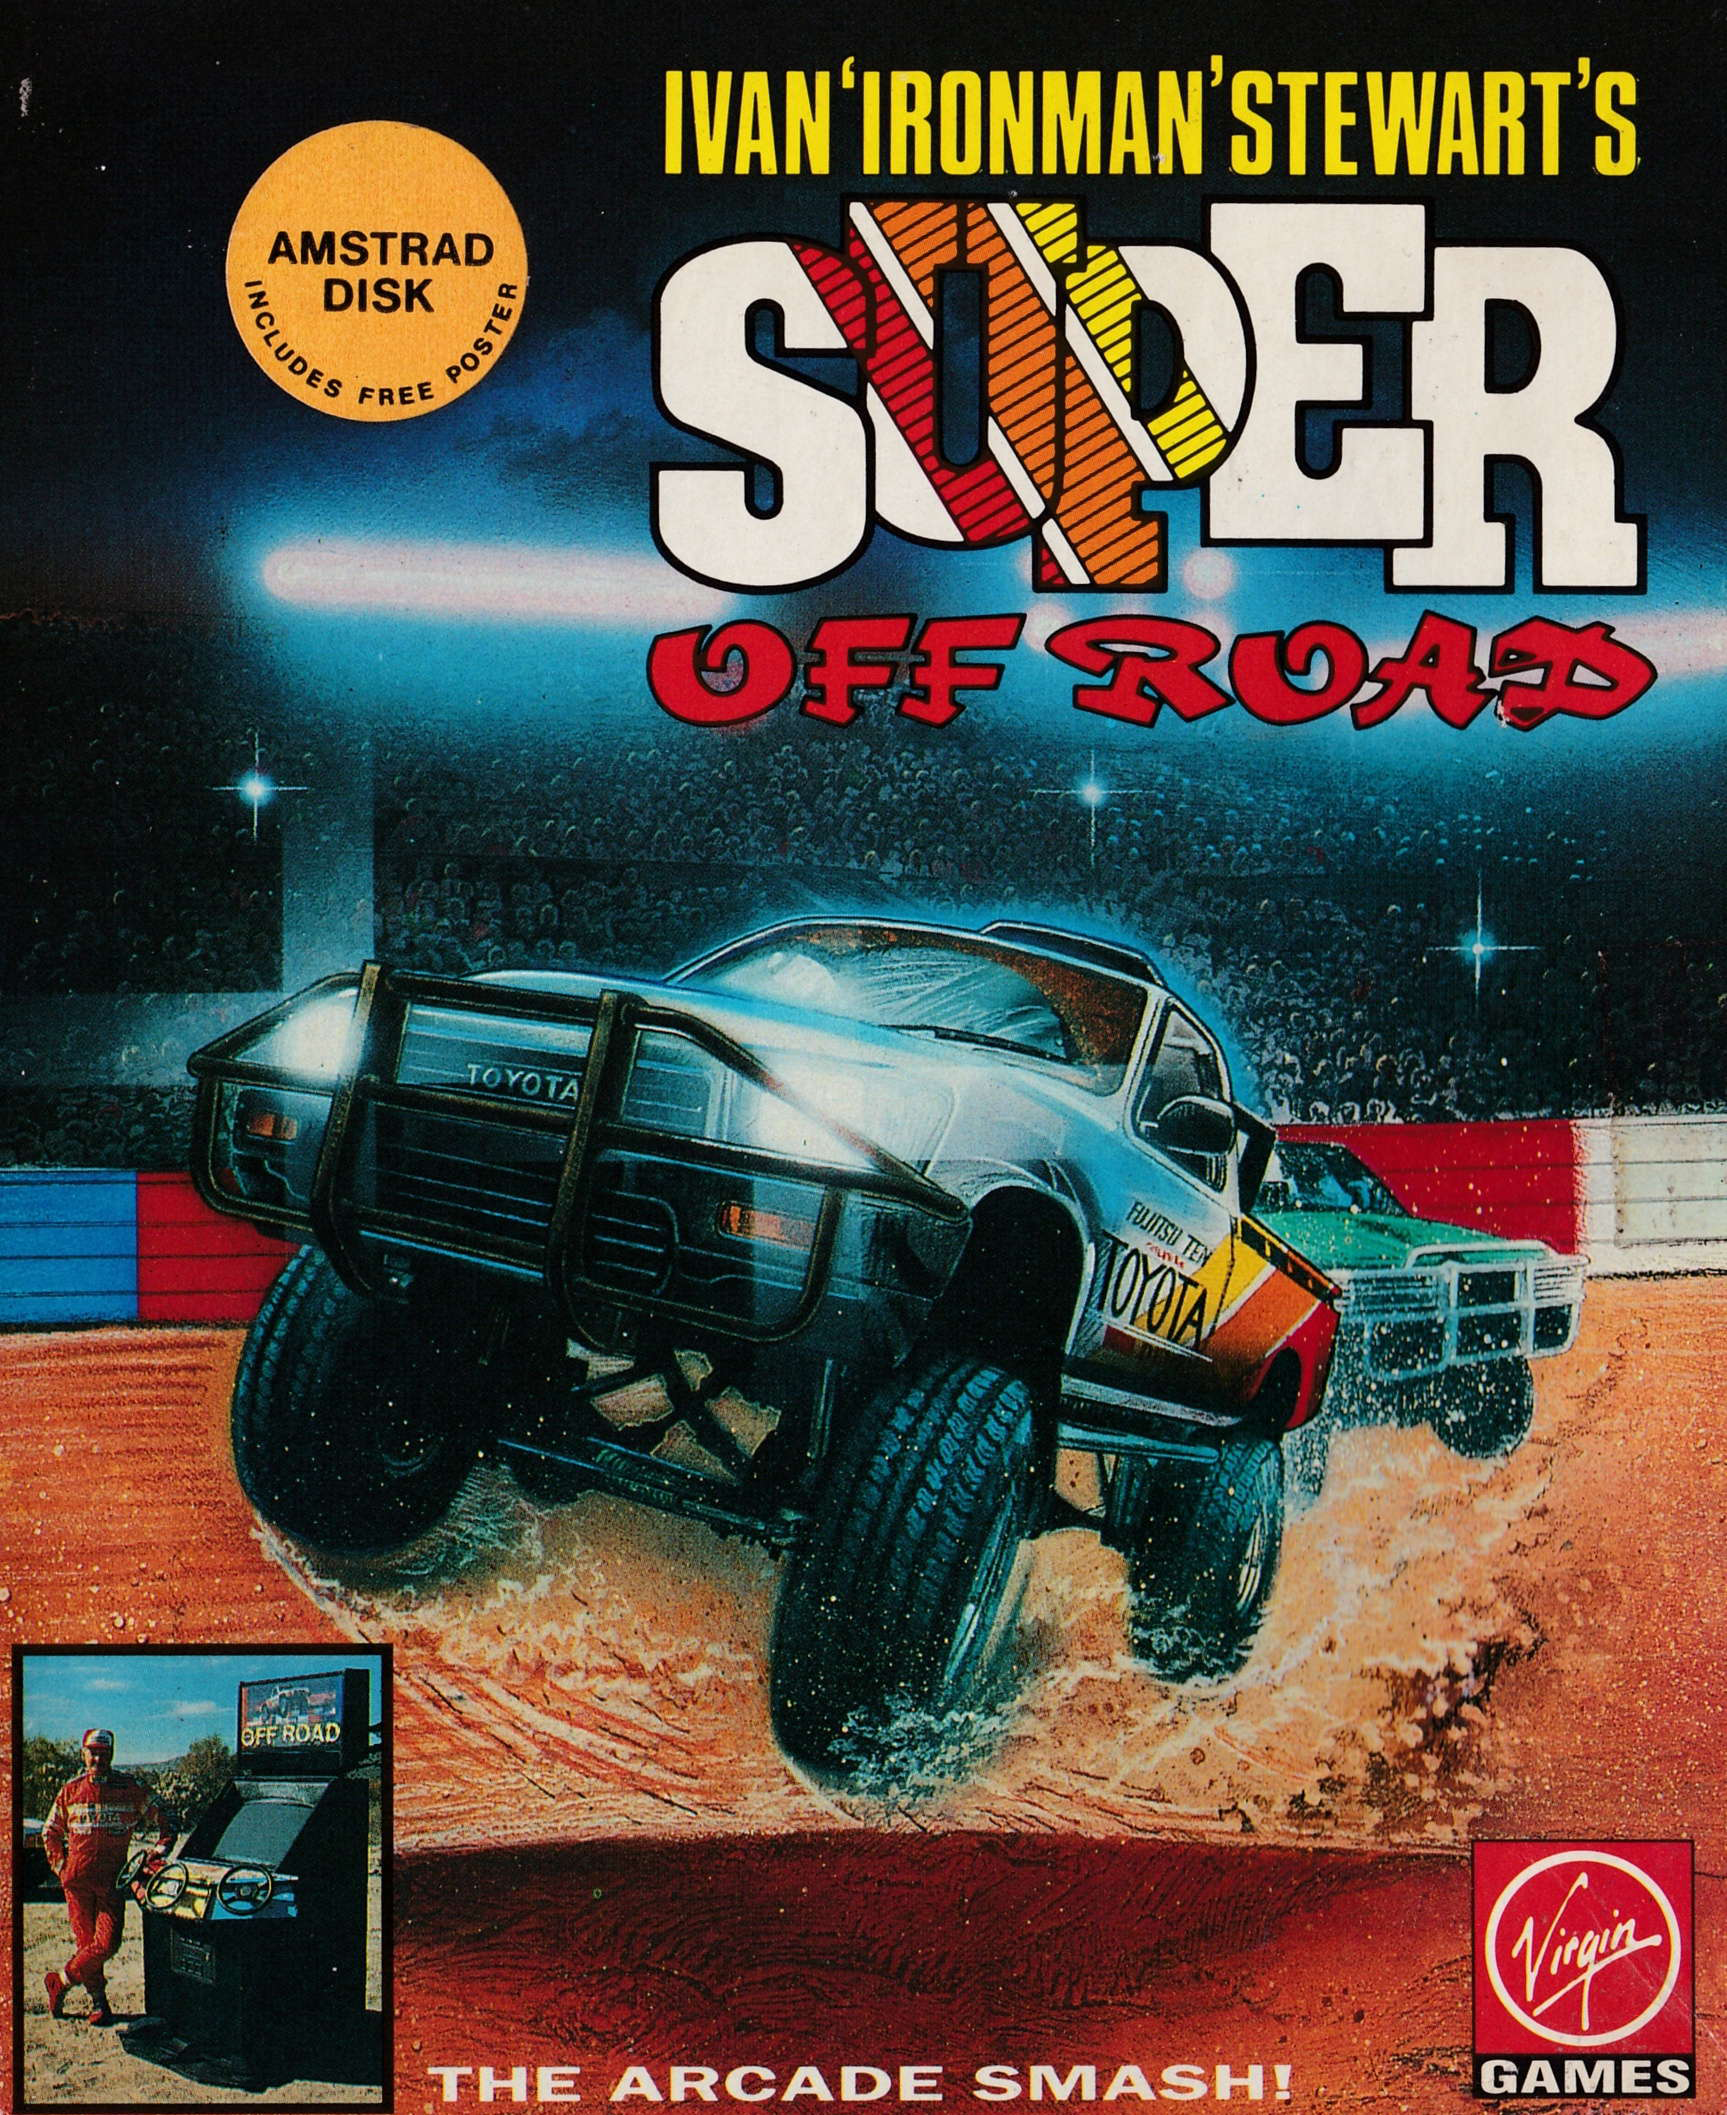 cover of the Amstrad CPC game Ivan 'Ironman' Stewart's Super Off Road  by GameBase CPC